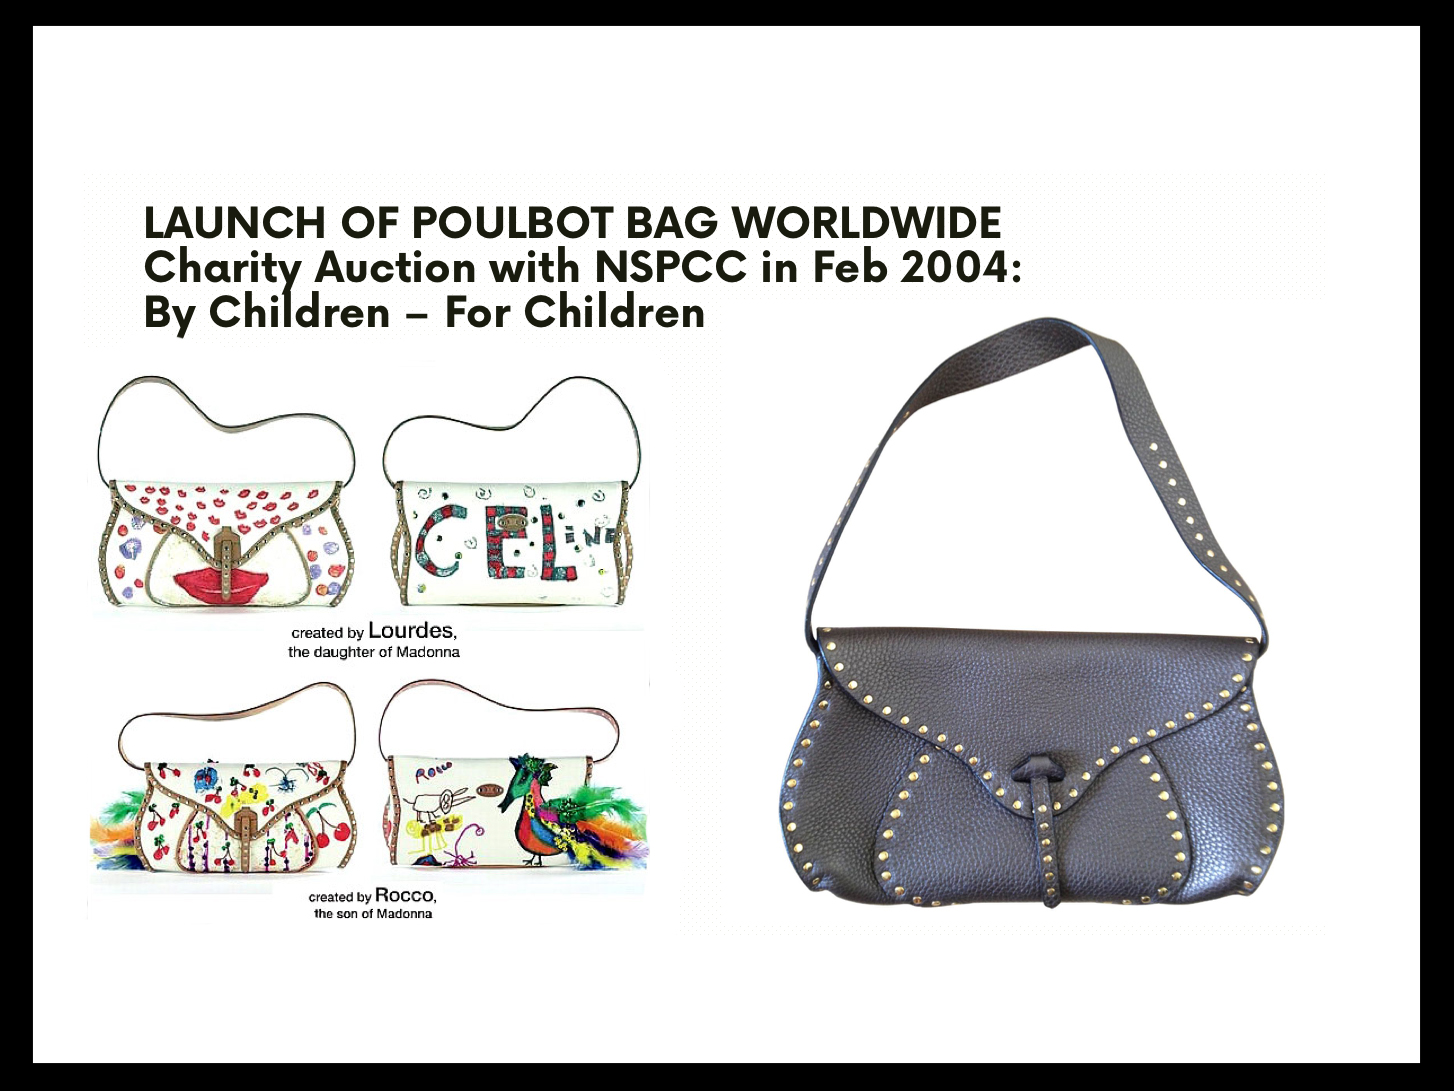 CELINE POULBOT BAG - As part of the Poulbot bag Celine product launch: Created a charity project where children painted on a canvas bag, which was auctioned off for NSPCC children's charity. Guest artists included the offspring from Crown Princess Marie Chantal of Greece's daughter Princess Maria-Olympia, Queen Rania of Jordan's children Prince Husseim Princess Iman and Princess Salma, Stella Tenant's Cecily & Marcel, Cate Blanchett's son Dashiell, Helena Christensen's son Mingus, Claudia Schiffer's son Caspar, Sadie Frost's Rudy Rafferty and Iris, Yasmin Le Bon's Tallulah Pine, Emily Mortimer's son Sam, Saffron Aldridge's sons Milo Finn, Jemima Khan's sons Sulaiman Kasim, David Bailey's son Fenton and daughter Paloma, Cindy Crawford's Kaia, Madonna's Lourdes and Rocco. This project was rolled out world-wide.